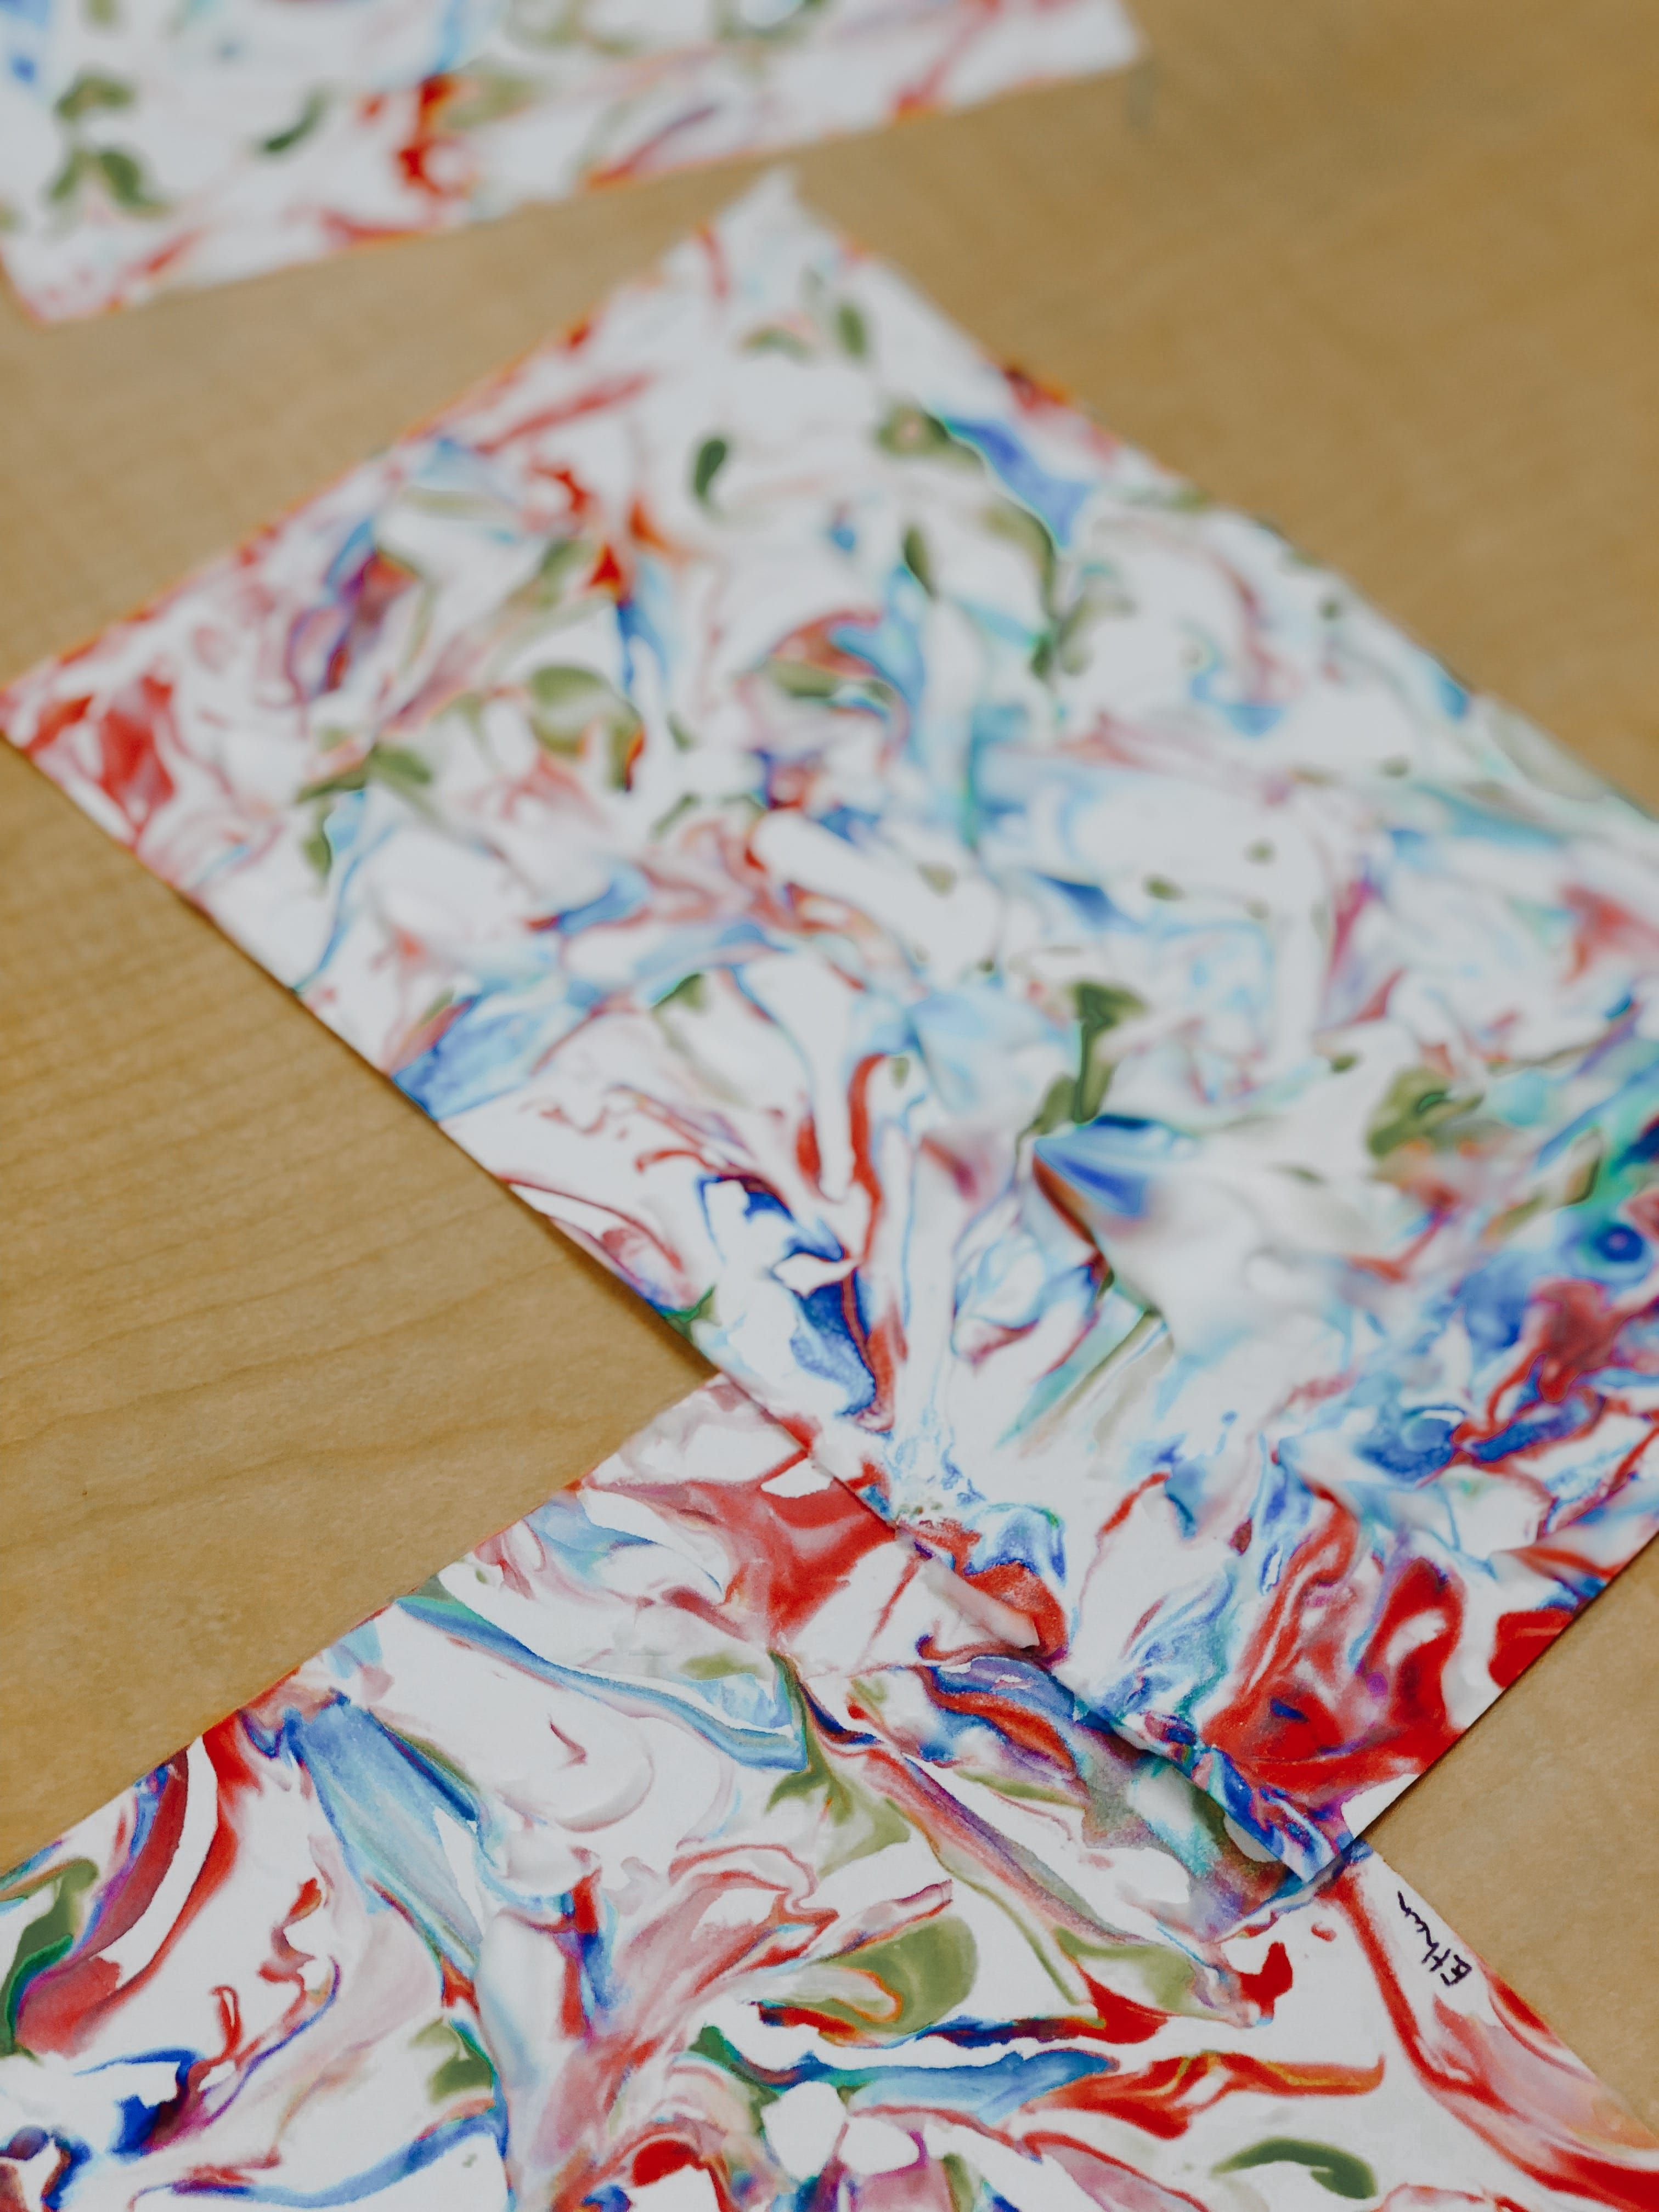 Shaving Cream Marble Painting! Image number 17